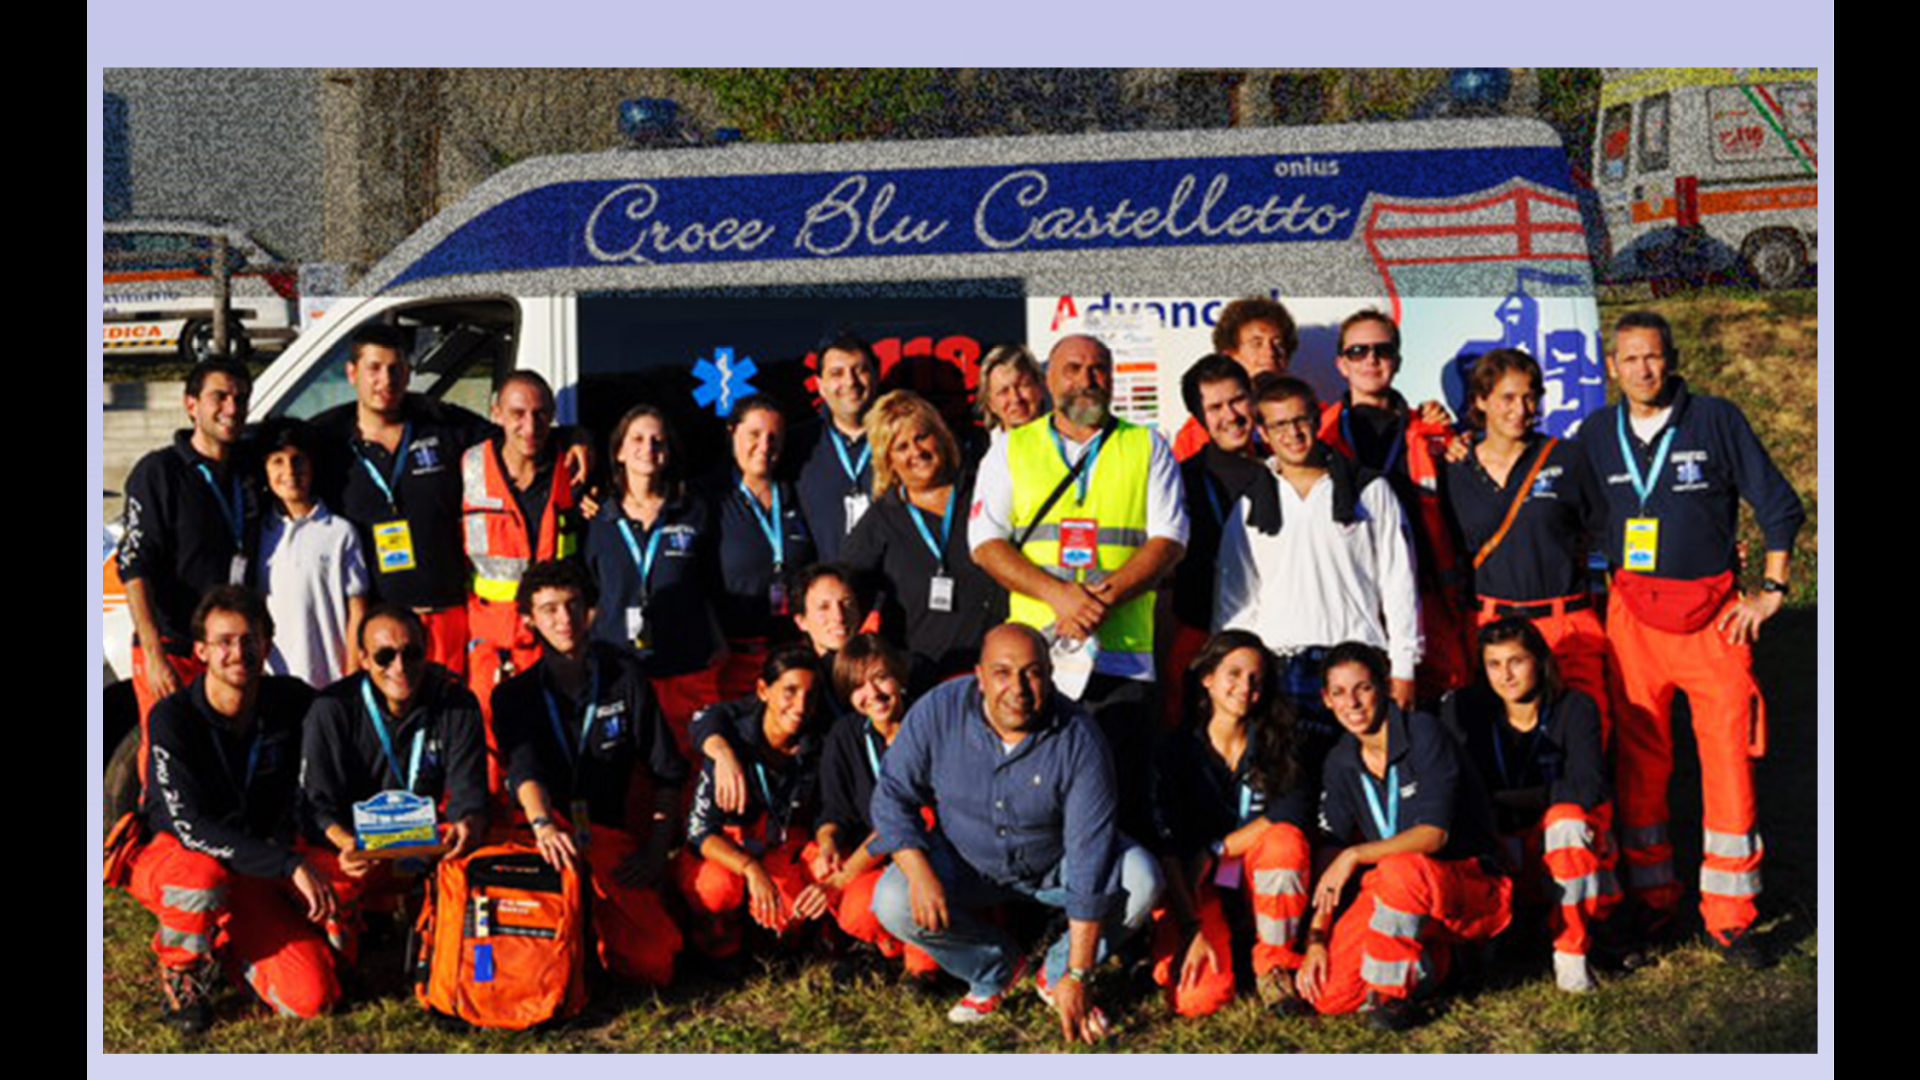 Lo Staff Croce Blu Castelletto